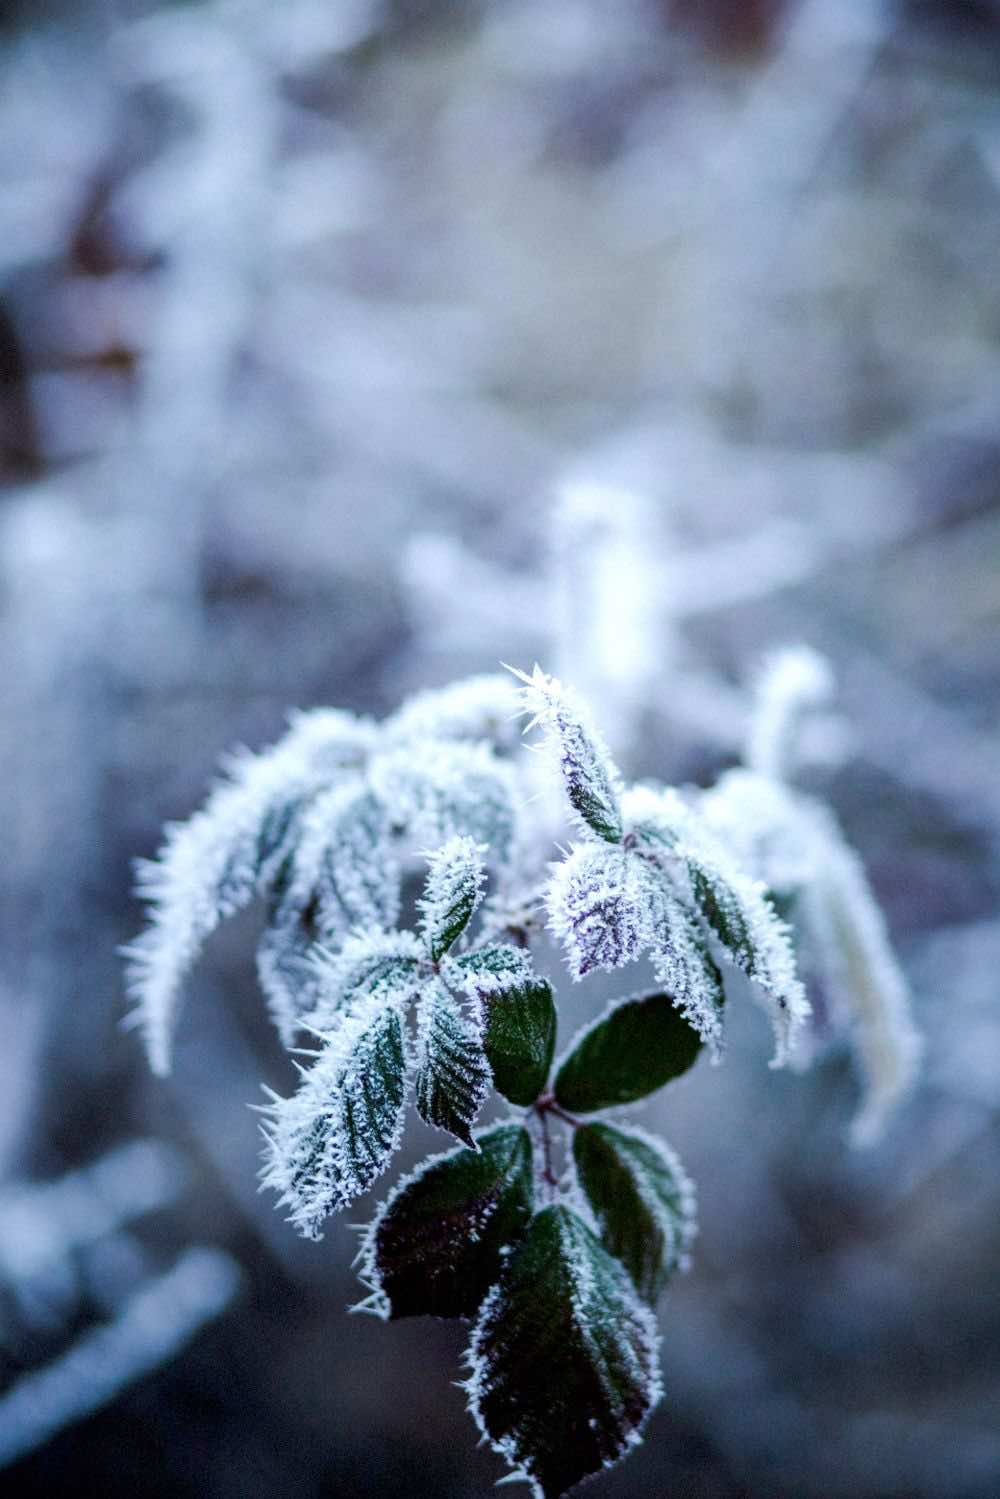 plant leves froze during winter | Container Gardening Tips For The Winter Season